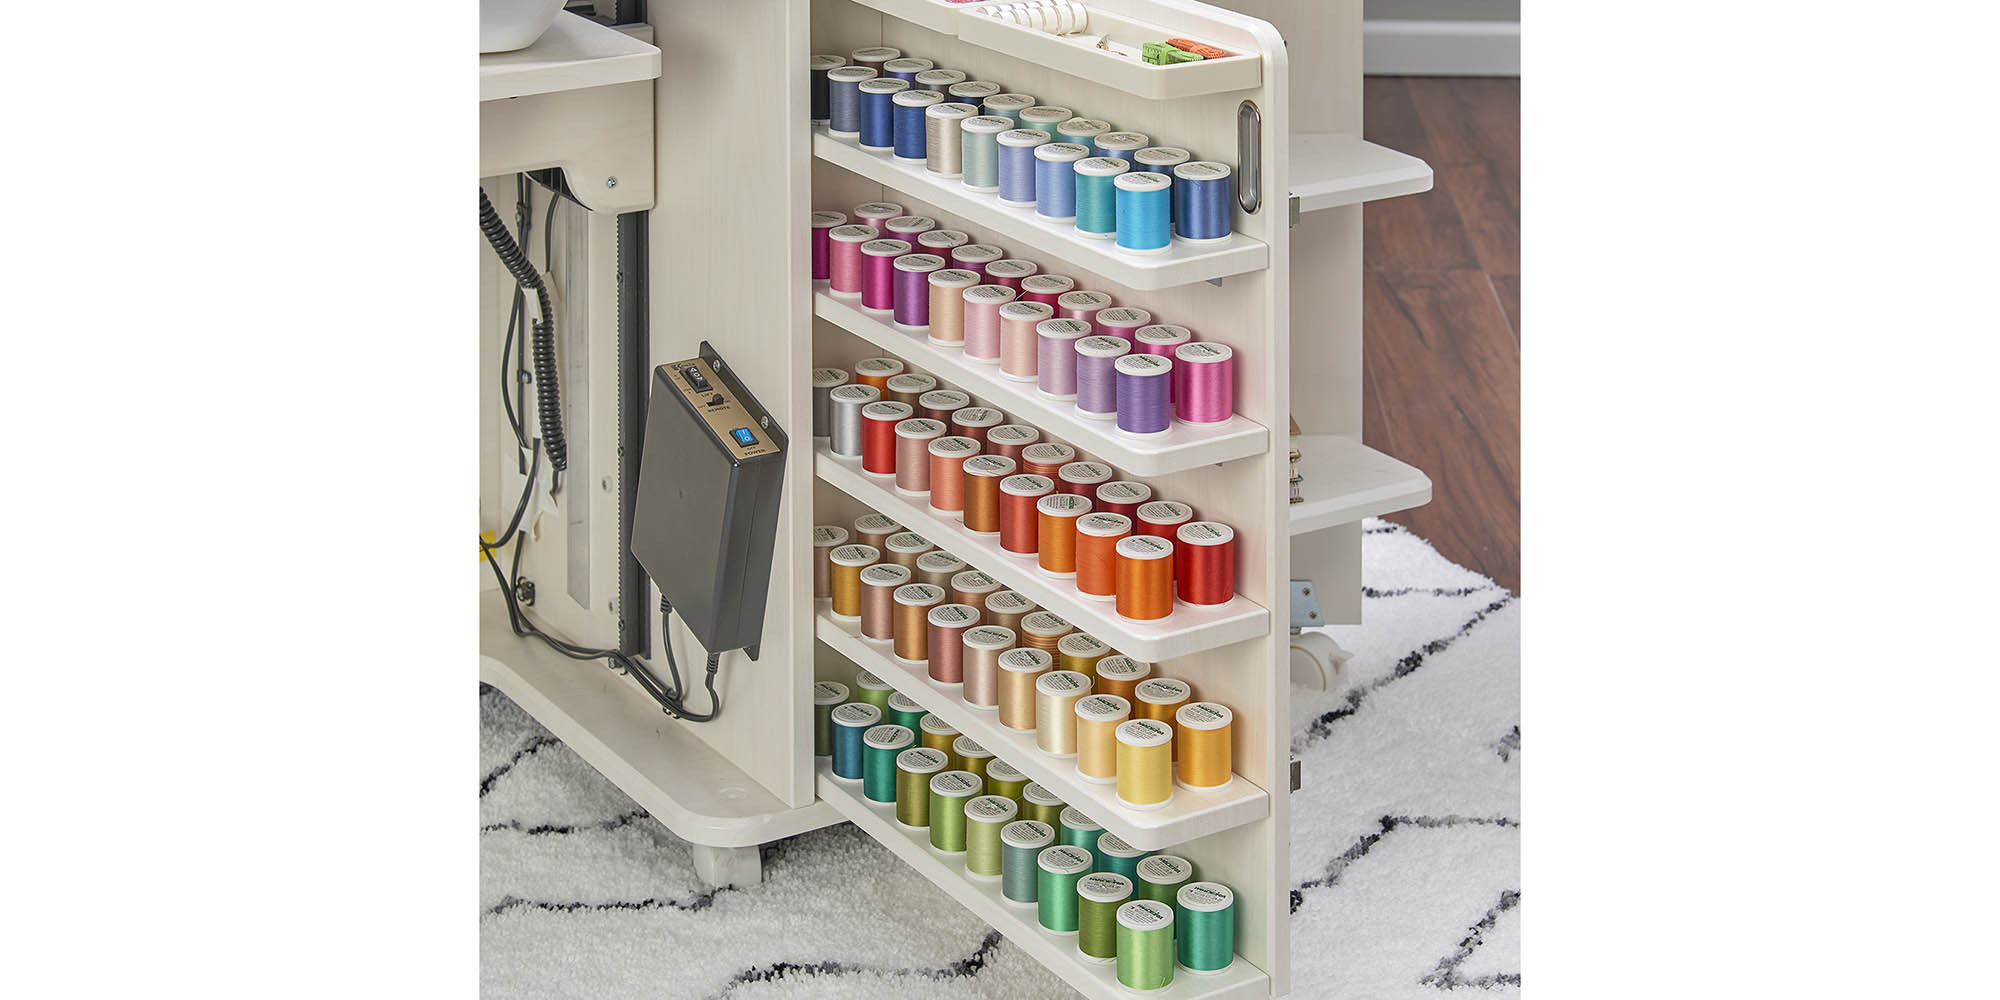 artisan-sllmline-embroidery-thread-closet-whitespace.jpg